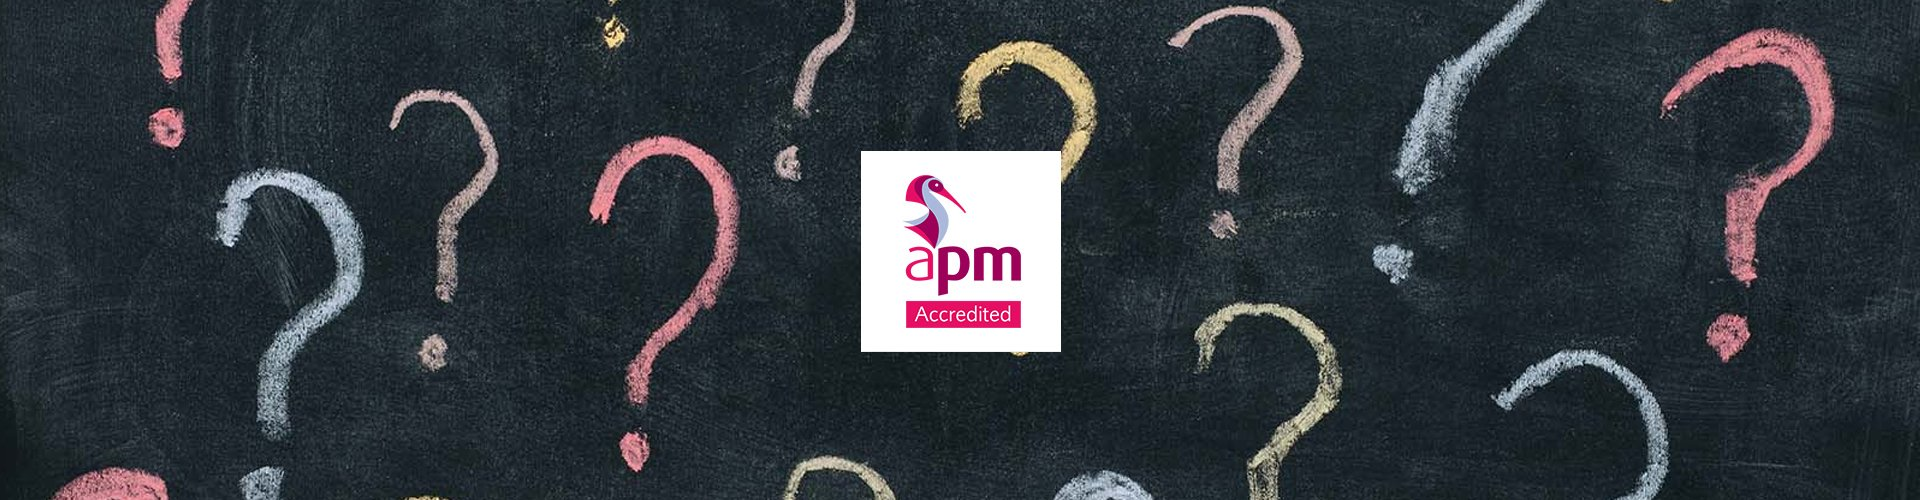 APM Accredited PMO Practitioner Frequently Asked Questions - Wellingtone PPM